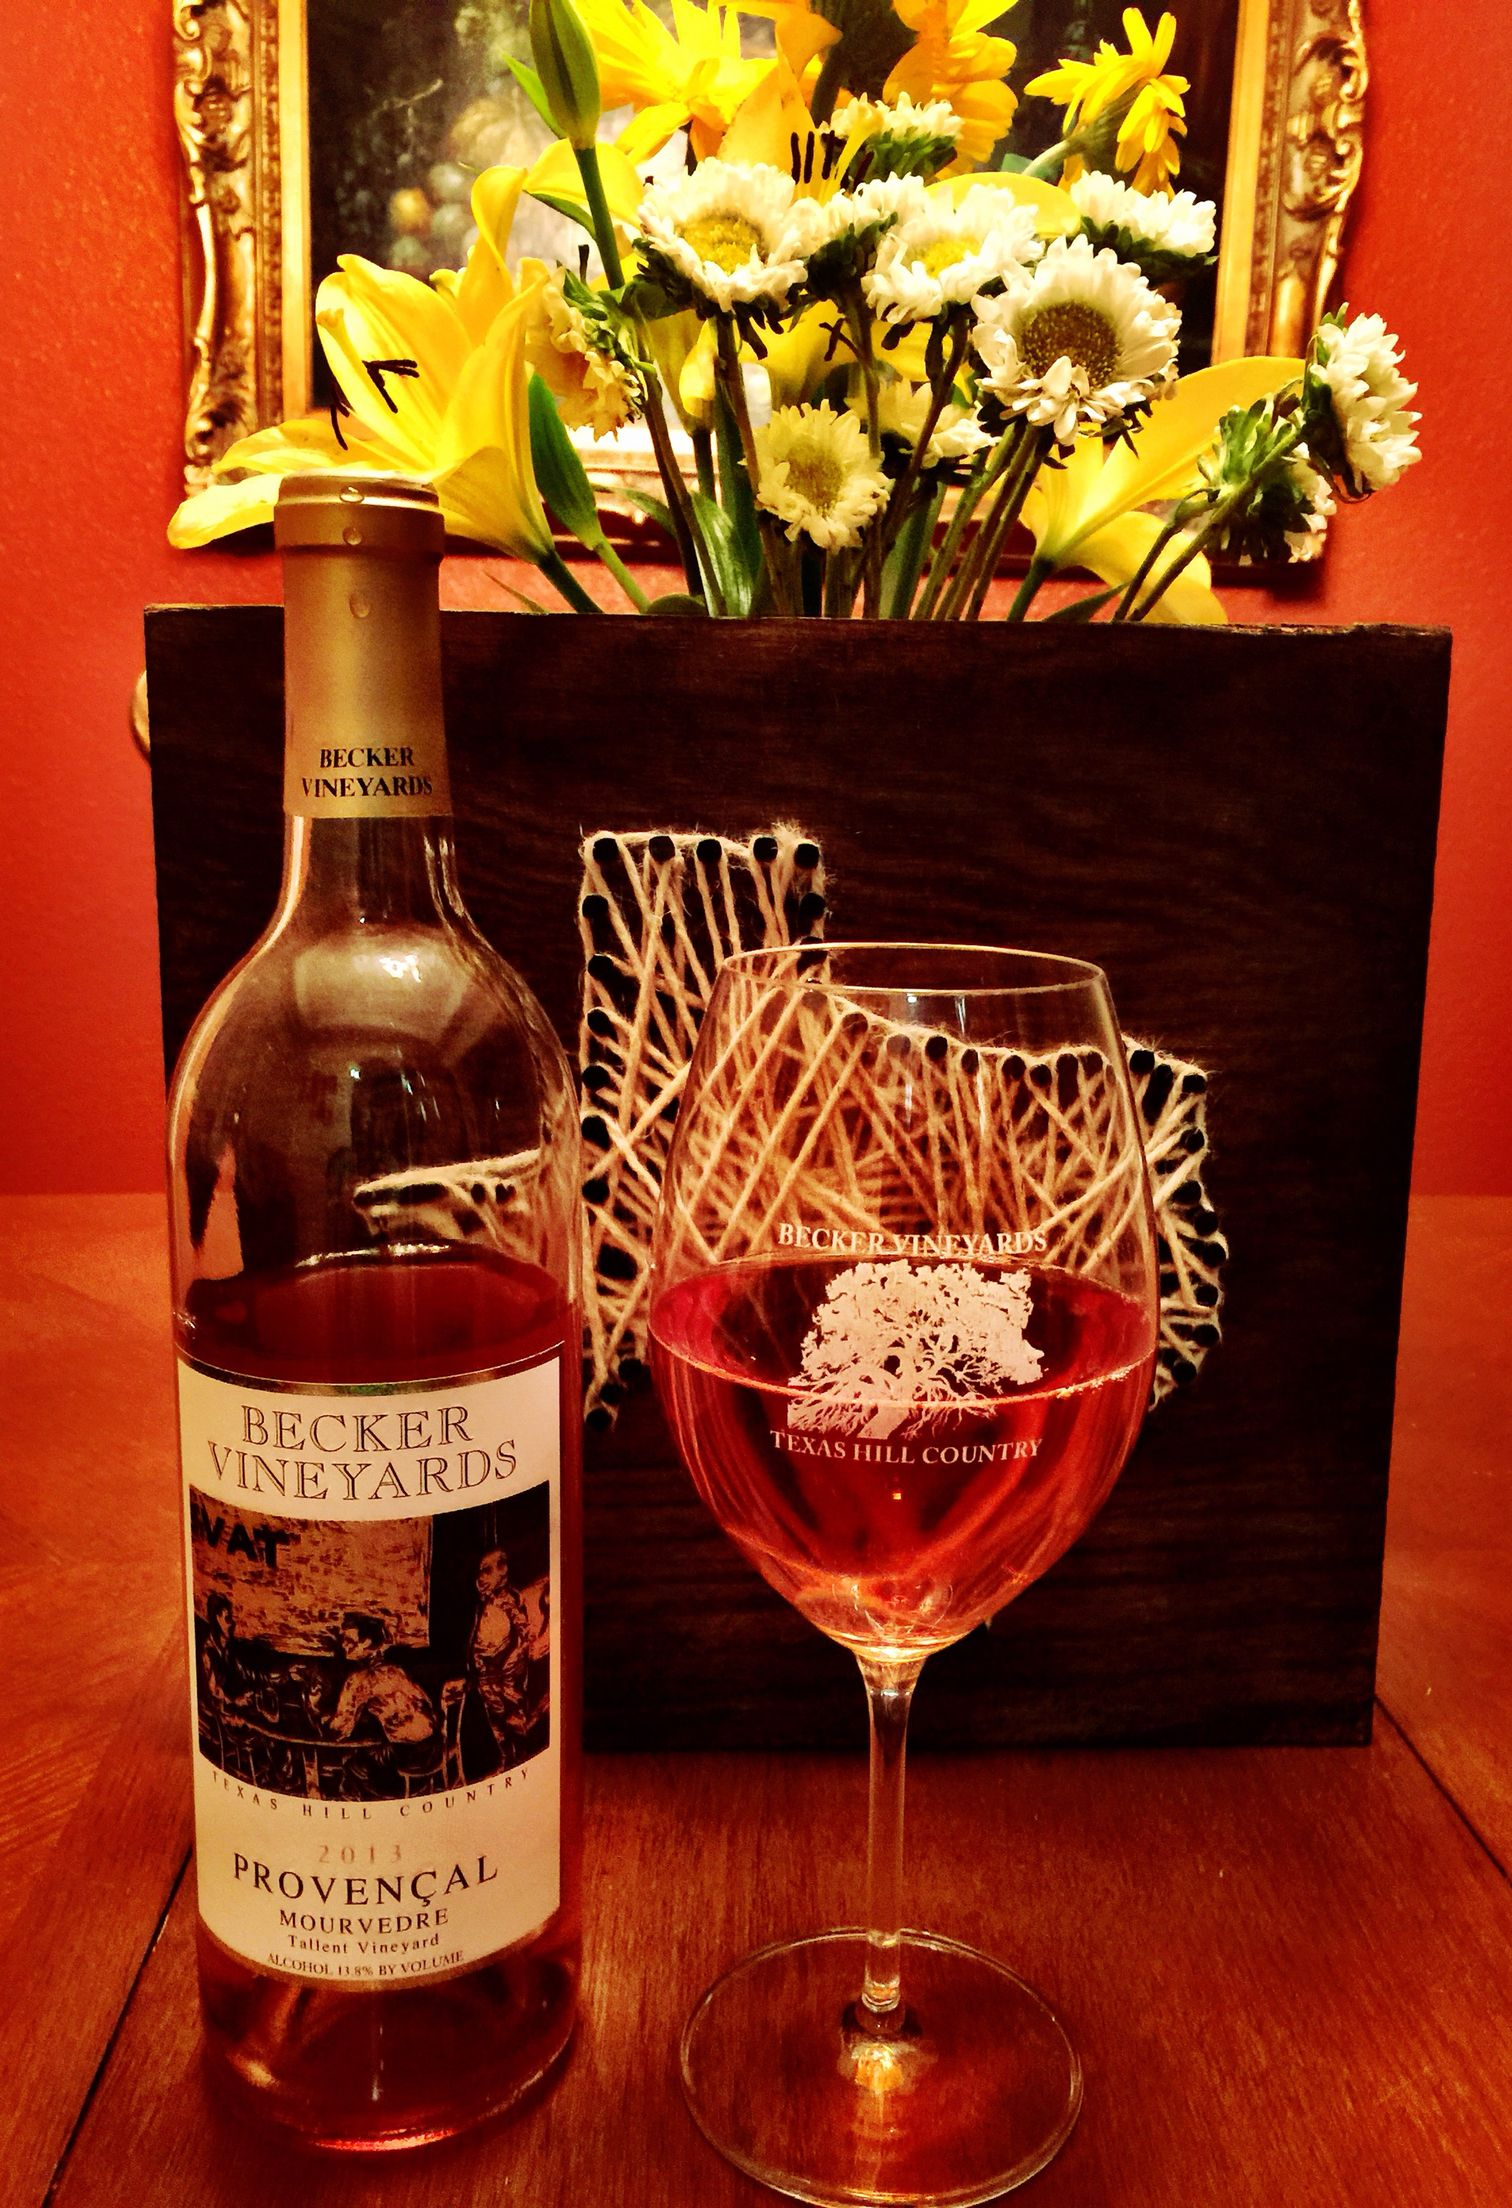 Becker Vineyards Provencal This Dry Rose Contains Delicate Pear Floral And Strawberry Notes Wines Wine Bottle Rose Wine Bottle